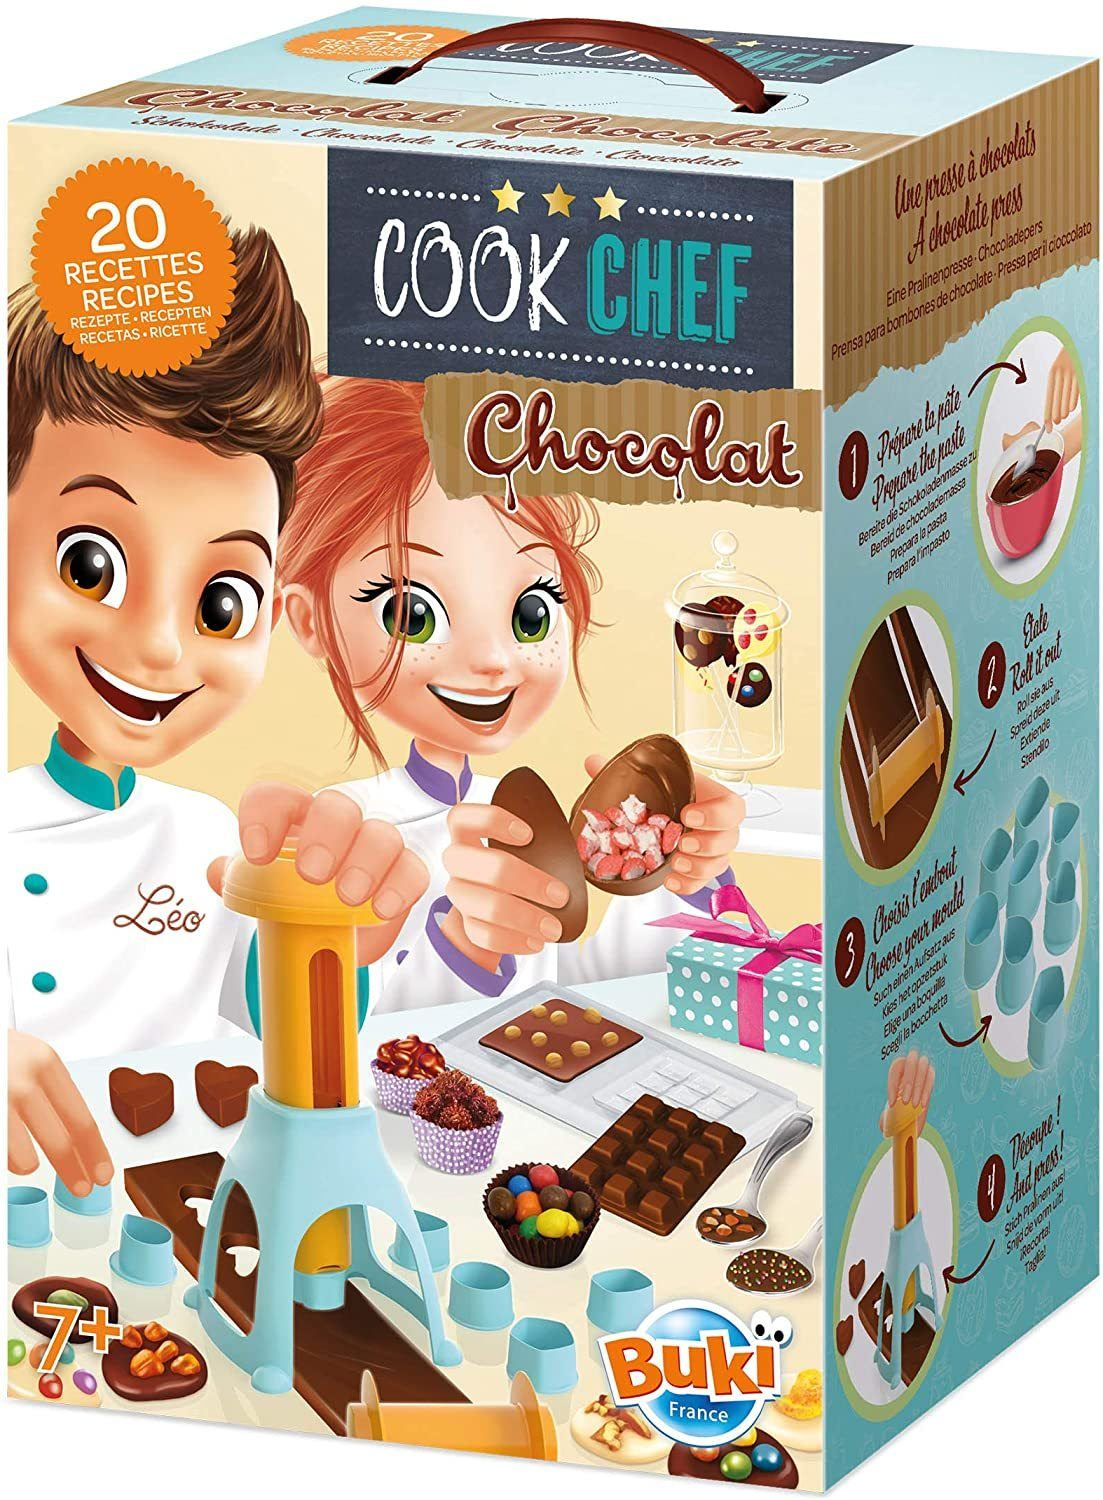 BUKI France 7166 - Cook Chef Chocolate - TOYBOX Cyprus